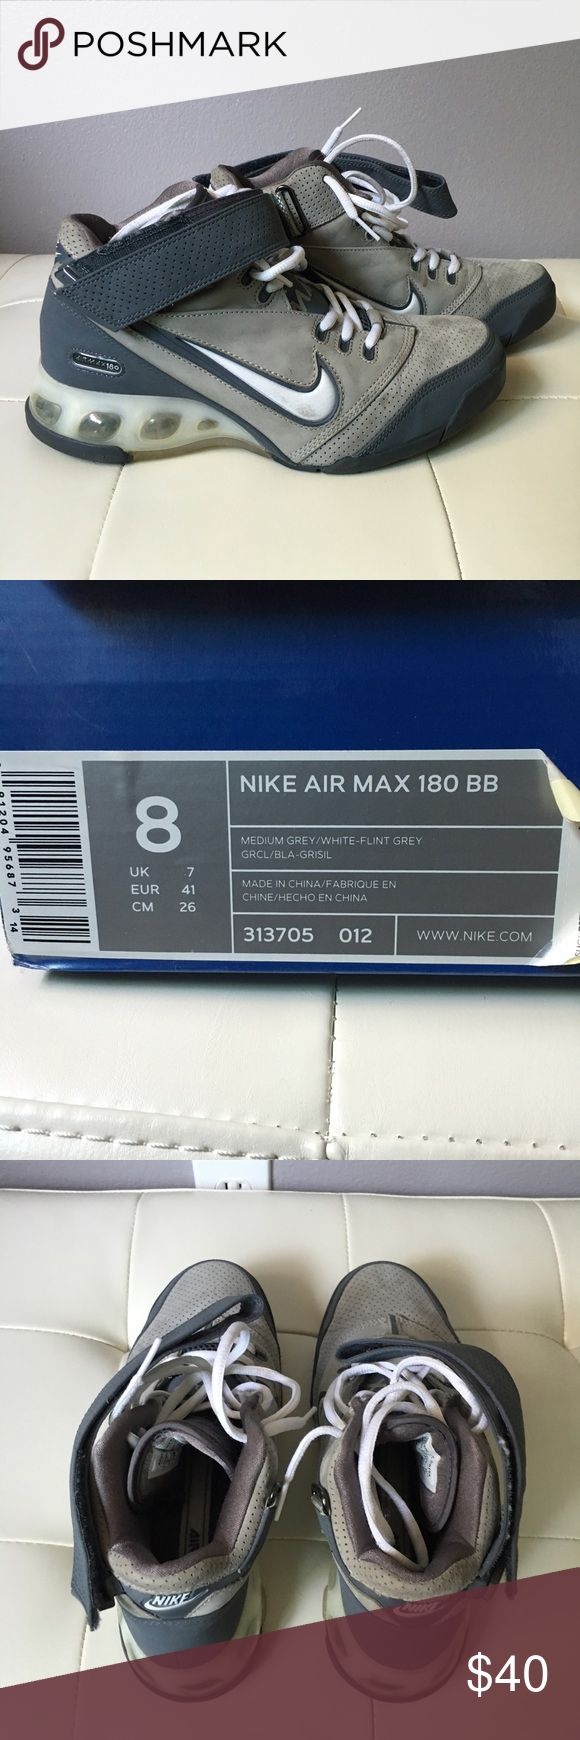 Nike Air Max 180 Gray Basketball Great condition, men's Nike Air Max 180 basketball shoes. Will come with box. Nike Shoes